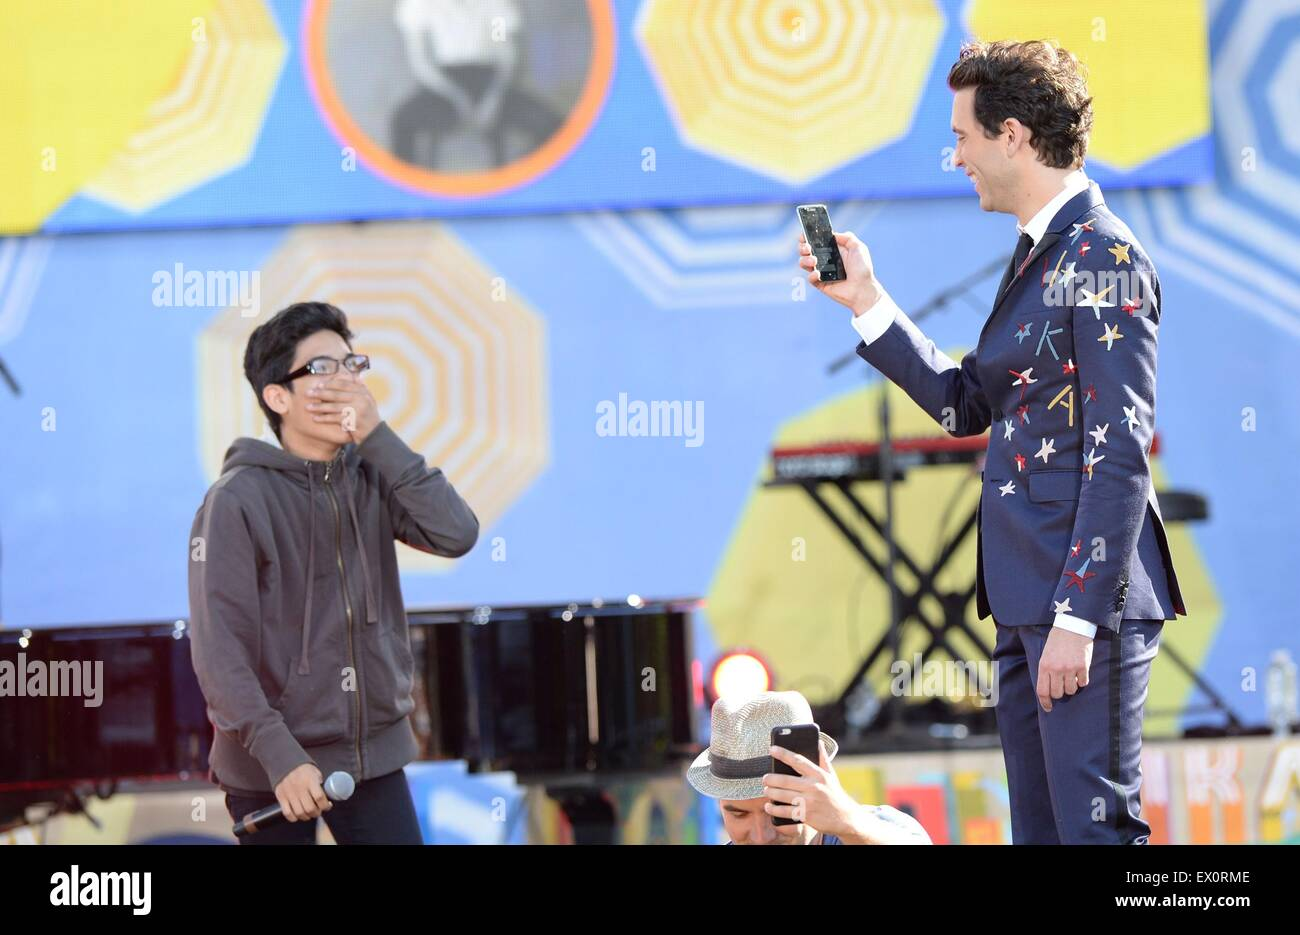 New York, NY, USA. 3rd July, 2015. Ozzie, Mika on stage for ABC's Good Morning America (GMA) Fun in the Sun - Stock Image